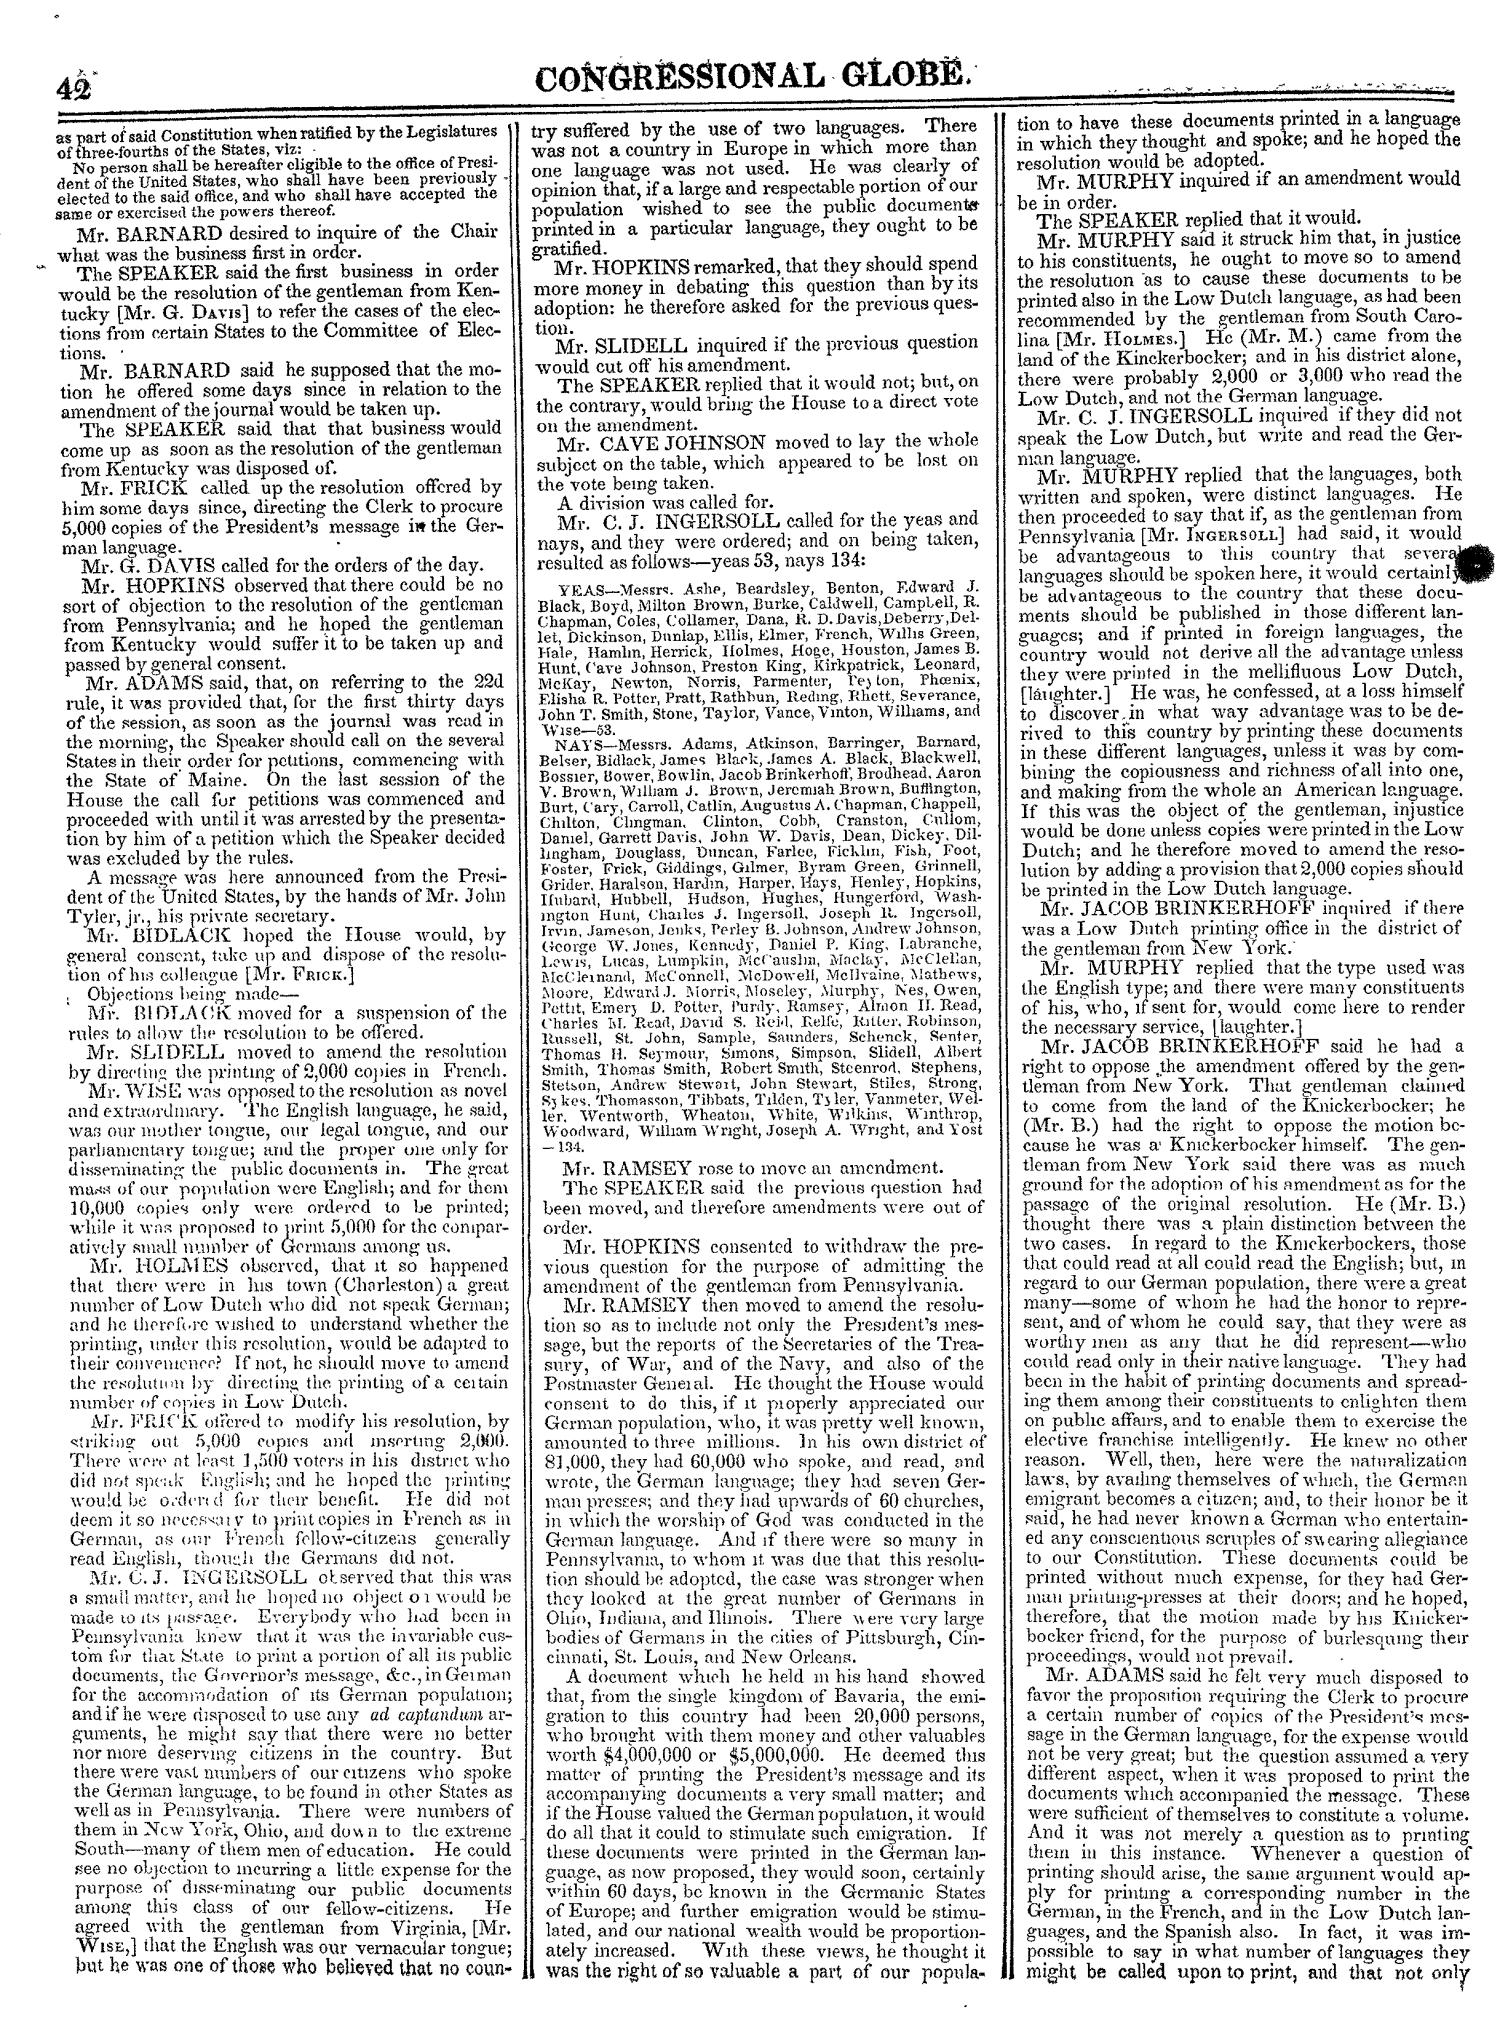 The Congressional Globe, Volume 13, Part 1: Twenty-Eighth Congress, First Session                                                                                                      42